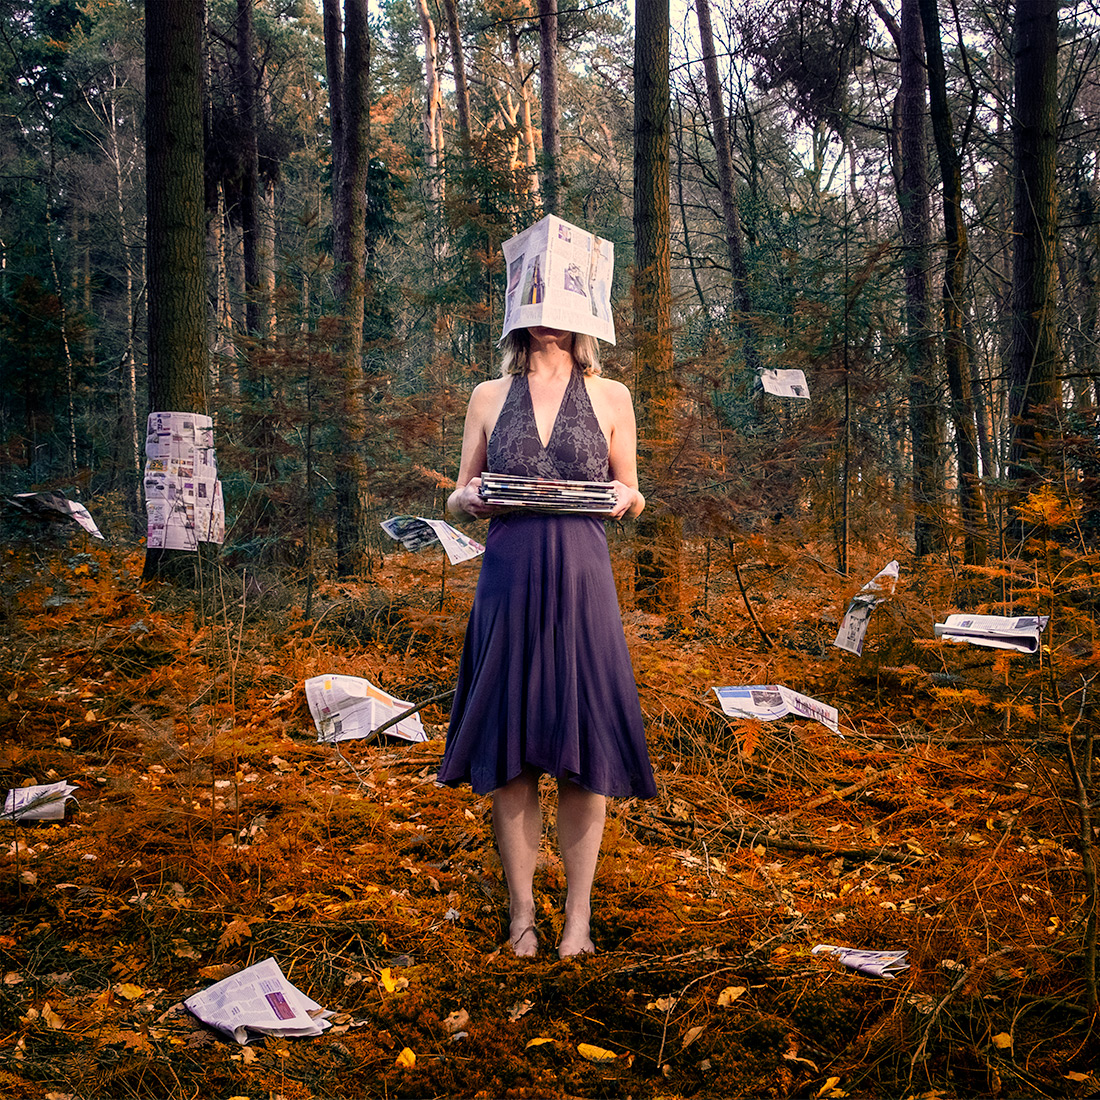 photography project Annemieke Tonnaer who are we fooling